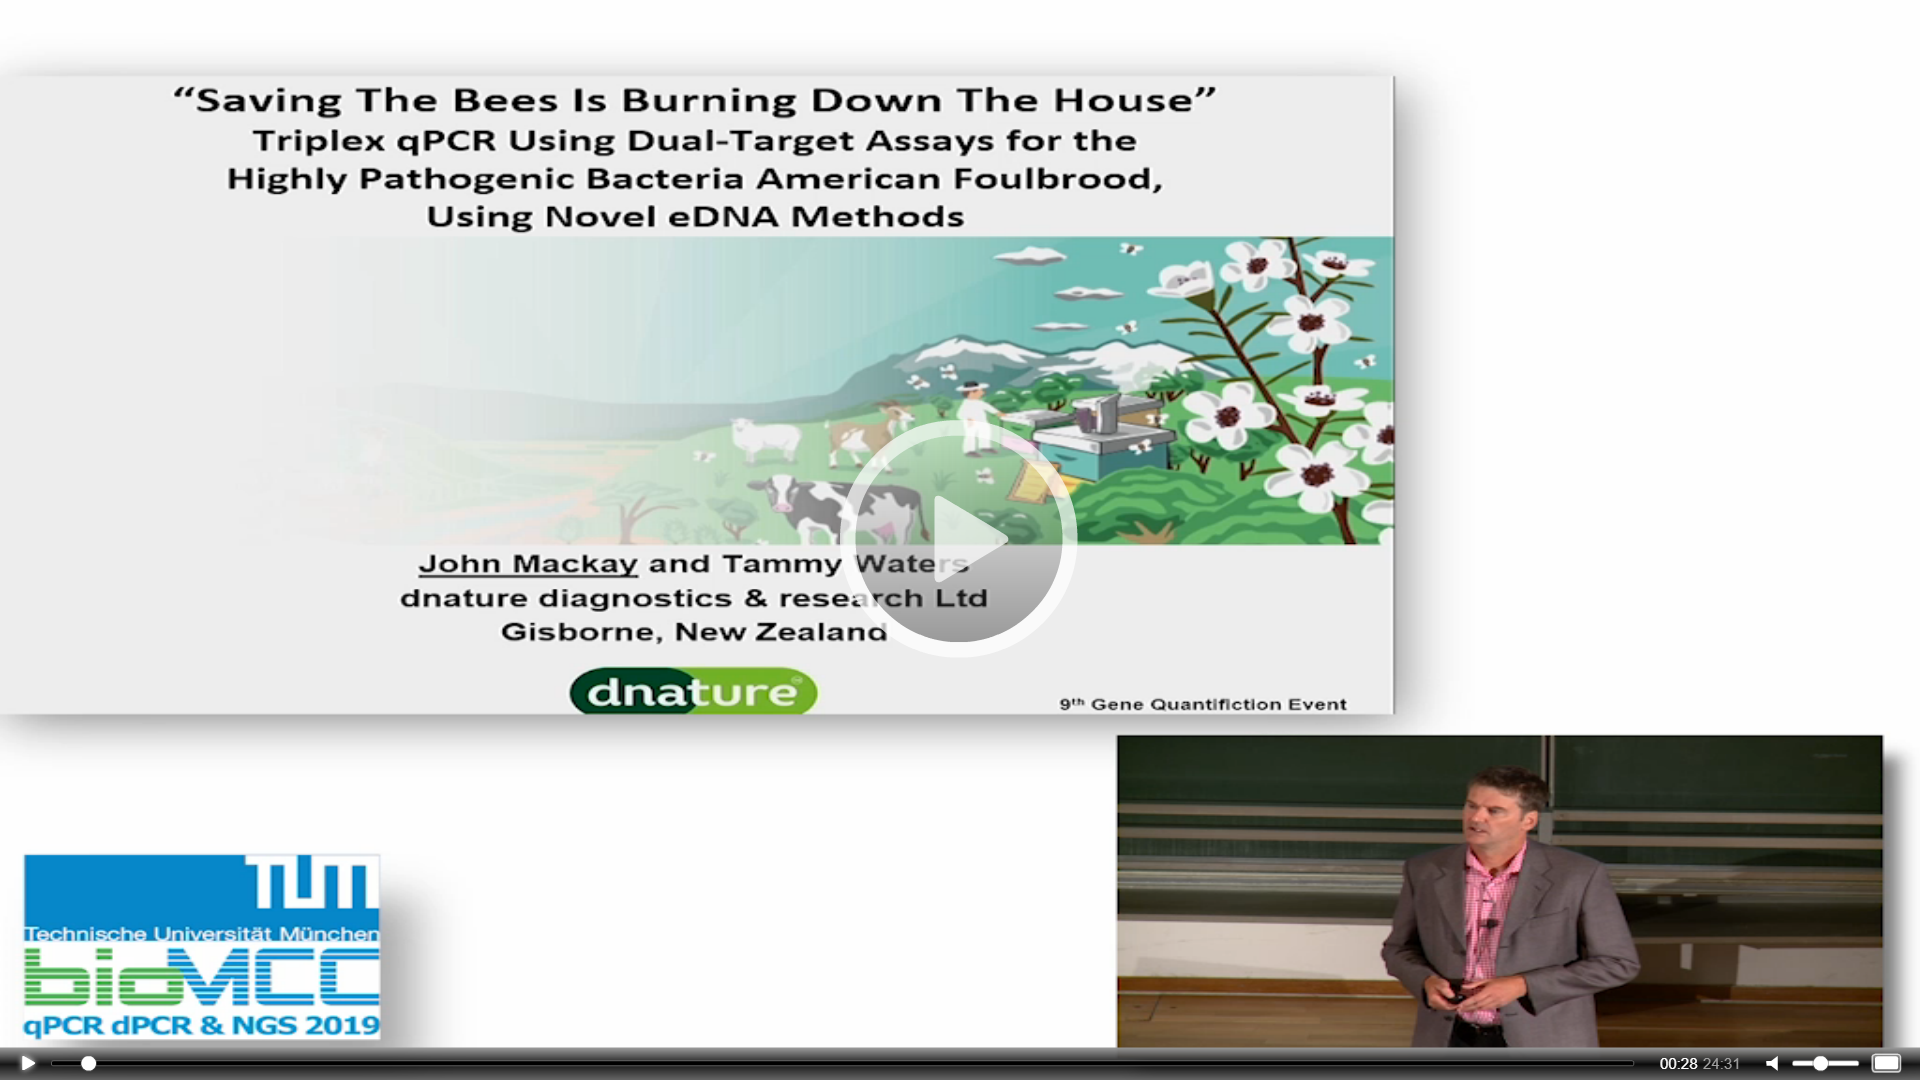 """Saving The Bees Is Burning Down The House"" - Triplex qPCR Using Dual-Target Assays For The Highly Pathogenic Bacteria American Foulbrood, Using Novel eDNA Methods"